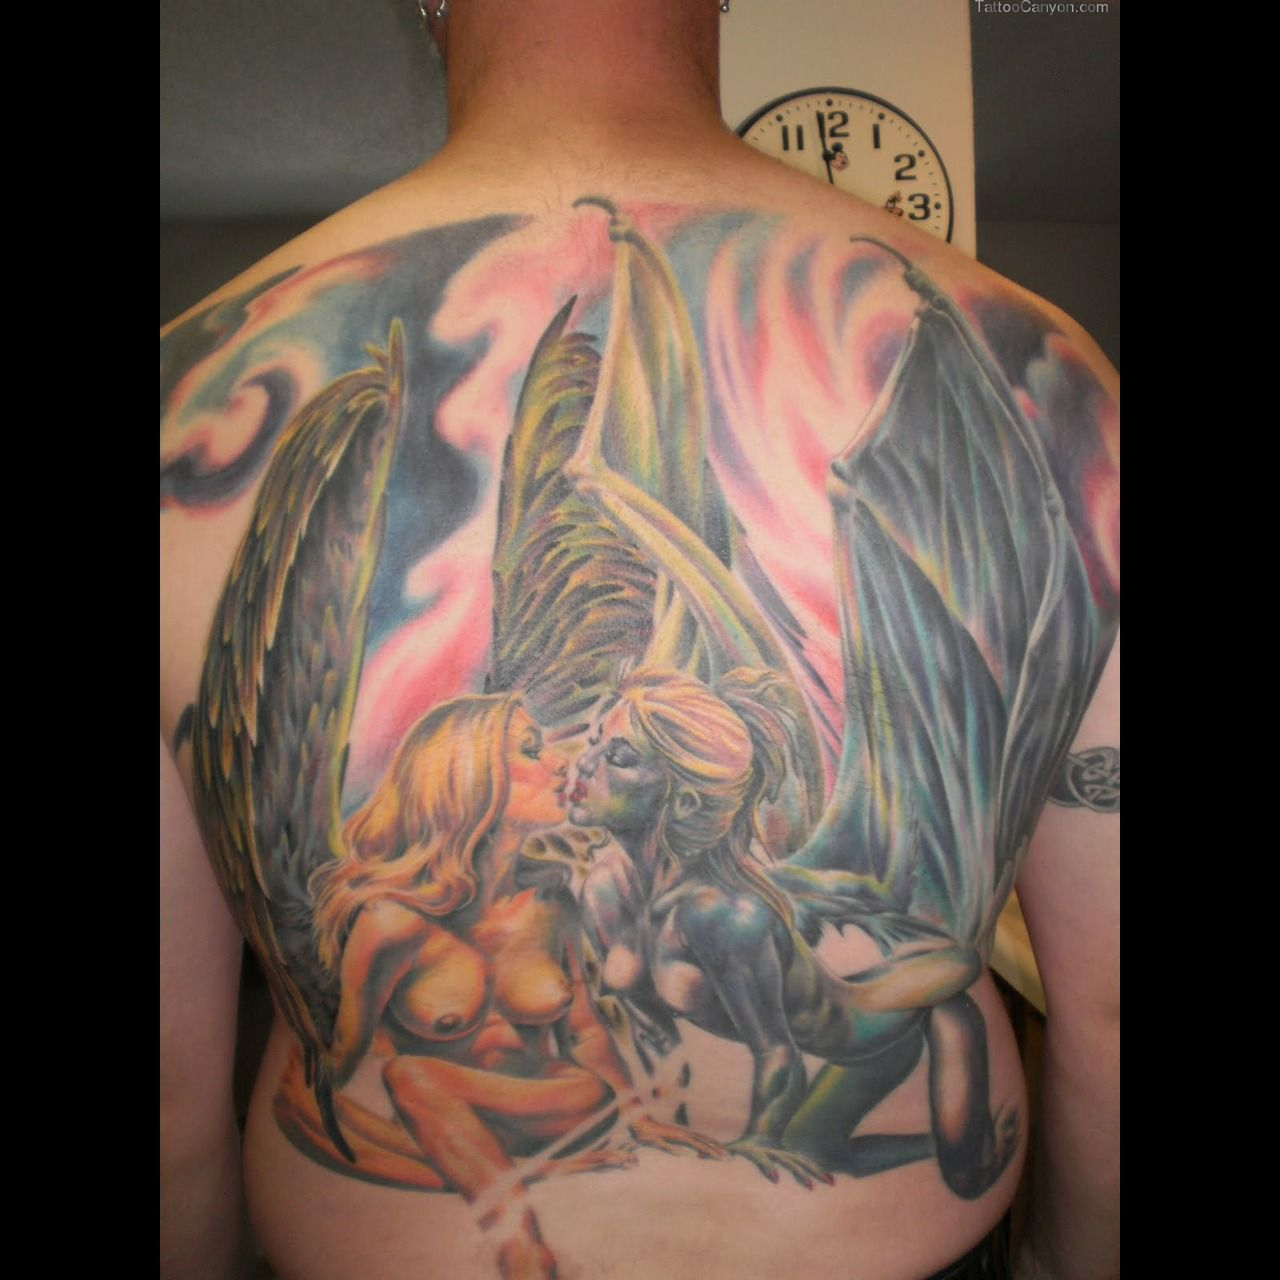 More Devils Tattoo Pictures